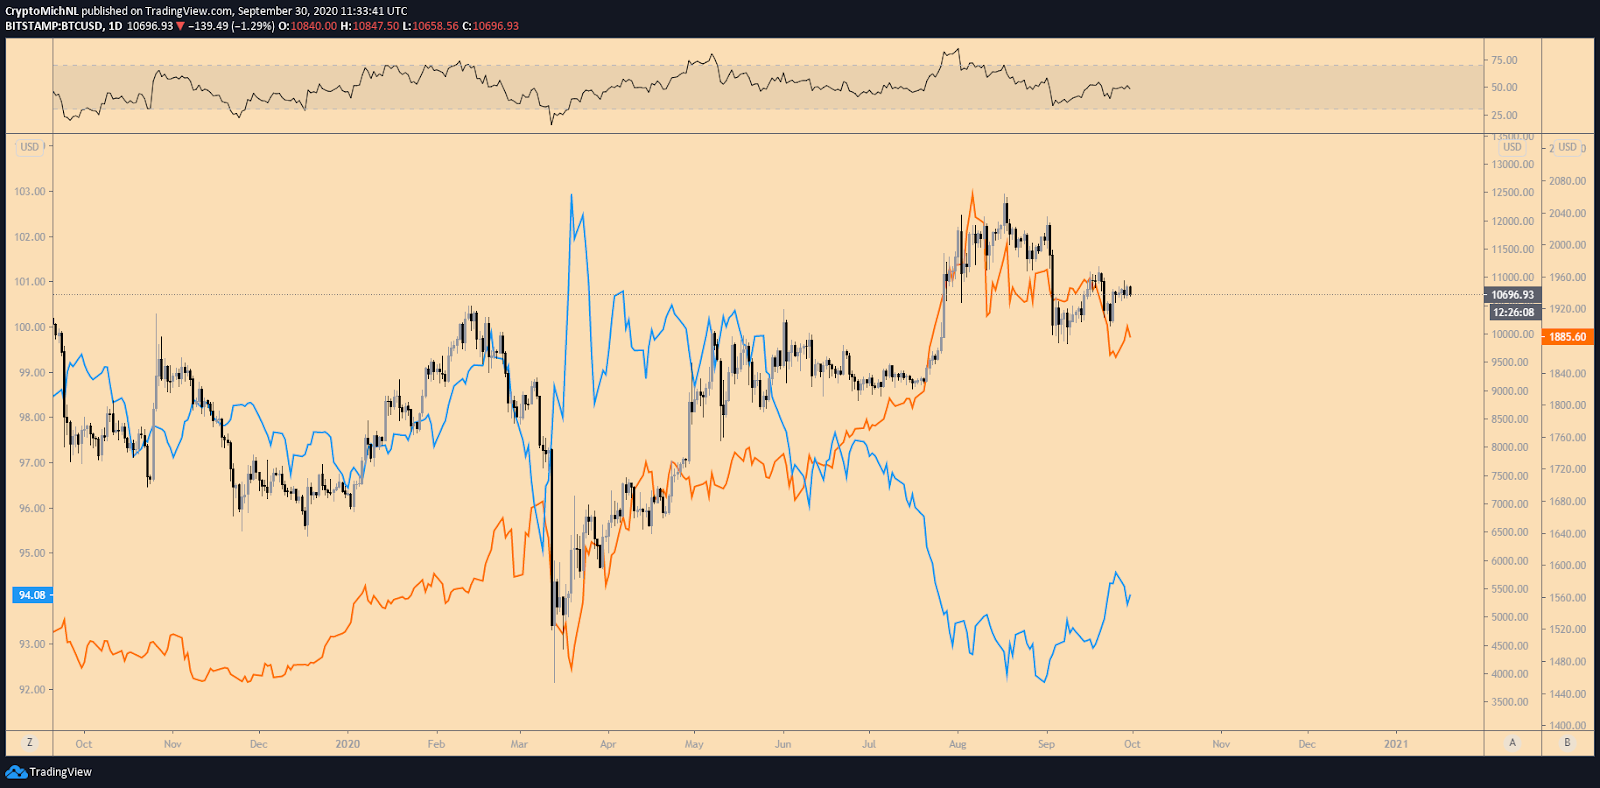 BTC/USD vs. Gold vs. DXY 1-day chart. Source: TradingView